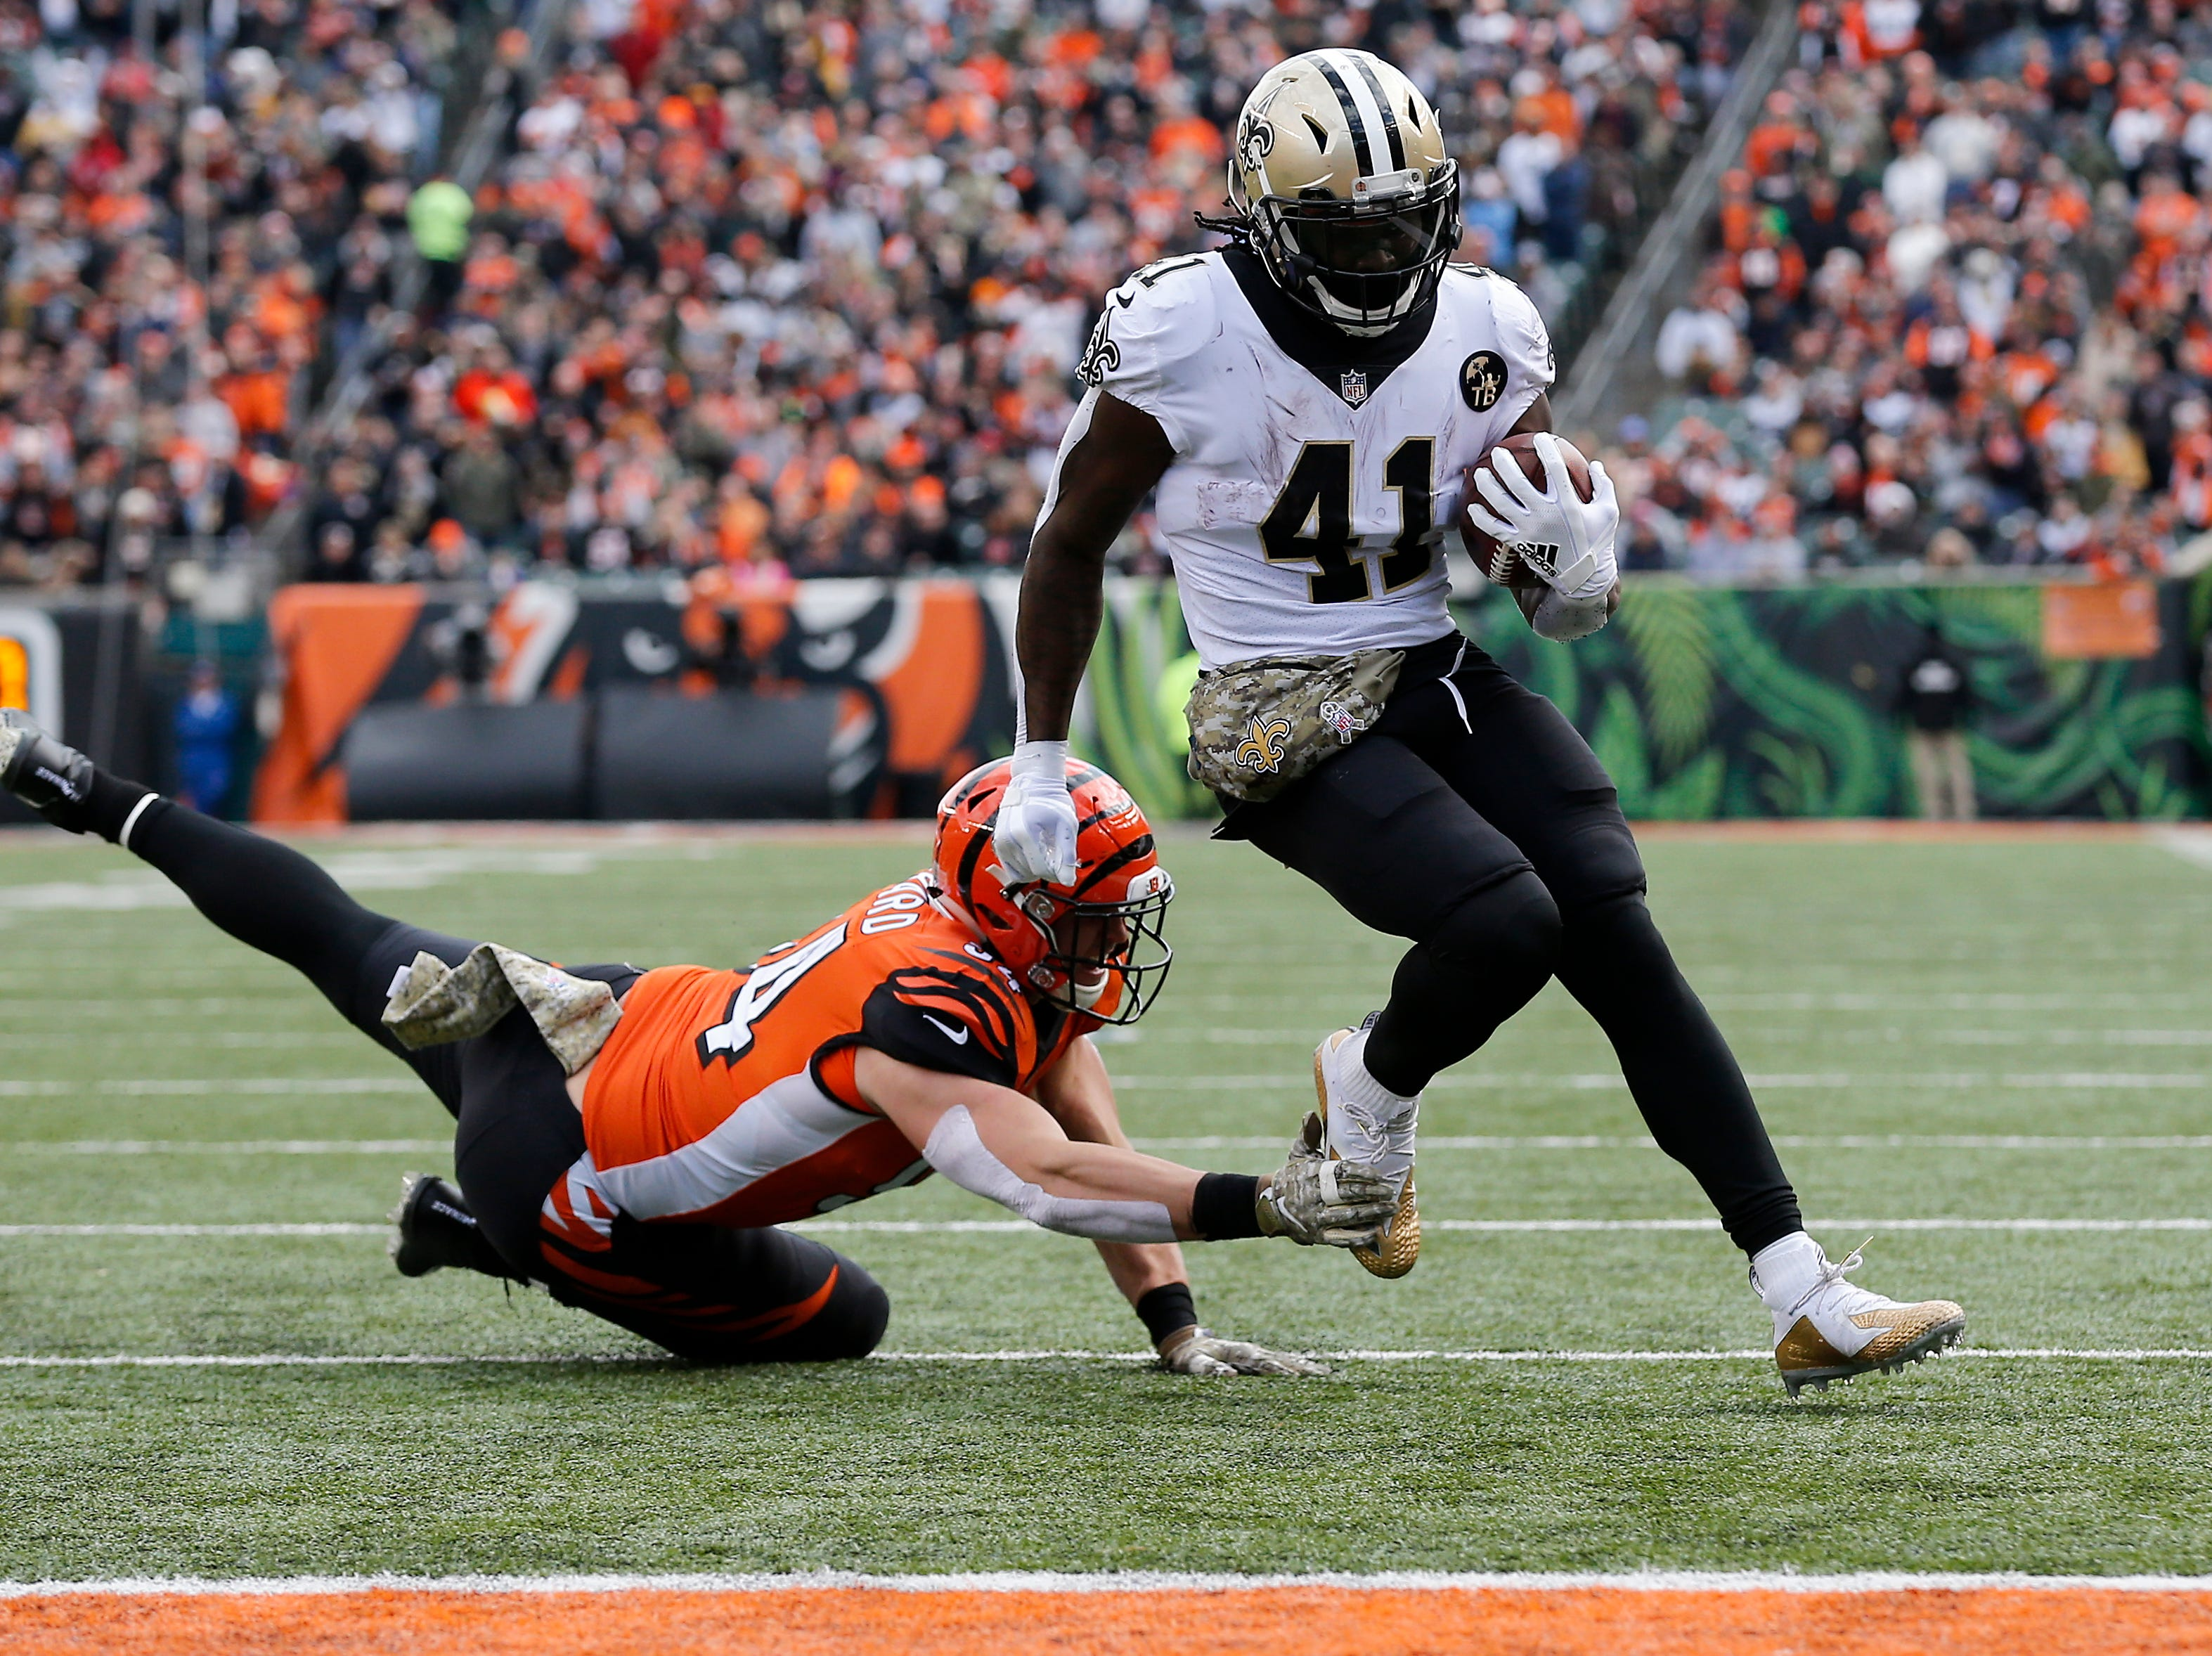 New Orleans Saints running back Alvin Kamara (41) high steps away from Cincinnati Bengals defensive end Sam Hubbard (94) for a touchdown in the second quarter of the NFL Week 10 game between the Cincinnati Bengals and the New Orleans Saints at Paul Brown Stadium in downtown Cincinnati on Sunday, Nov. 11, 2018. The Saints led 35-7 at halftime.